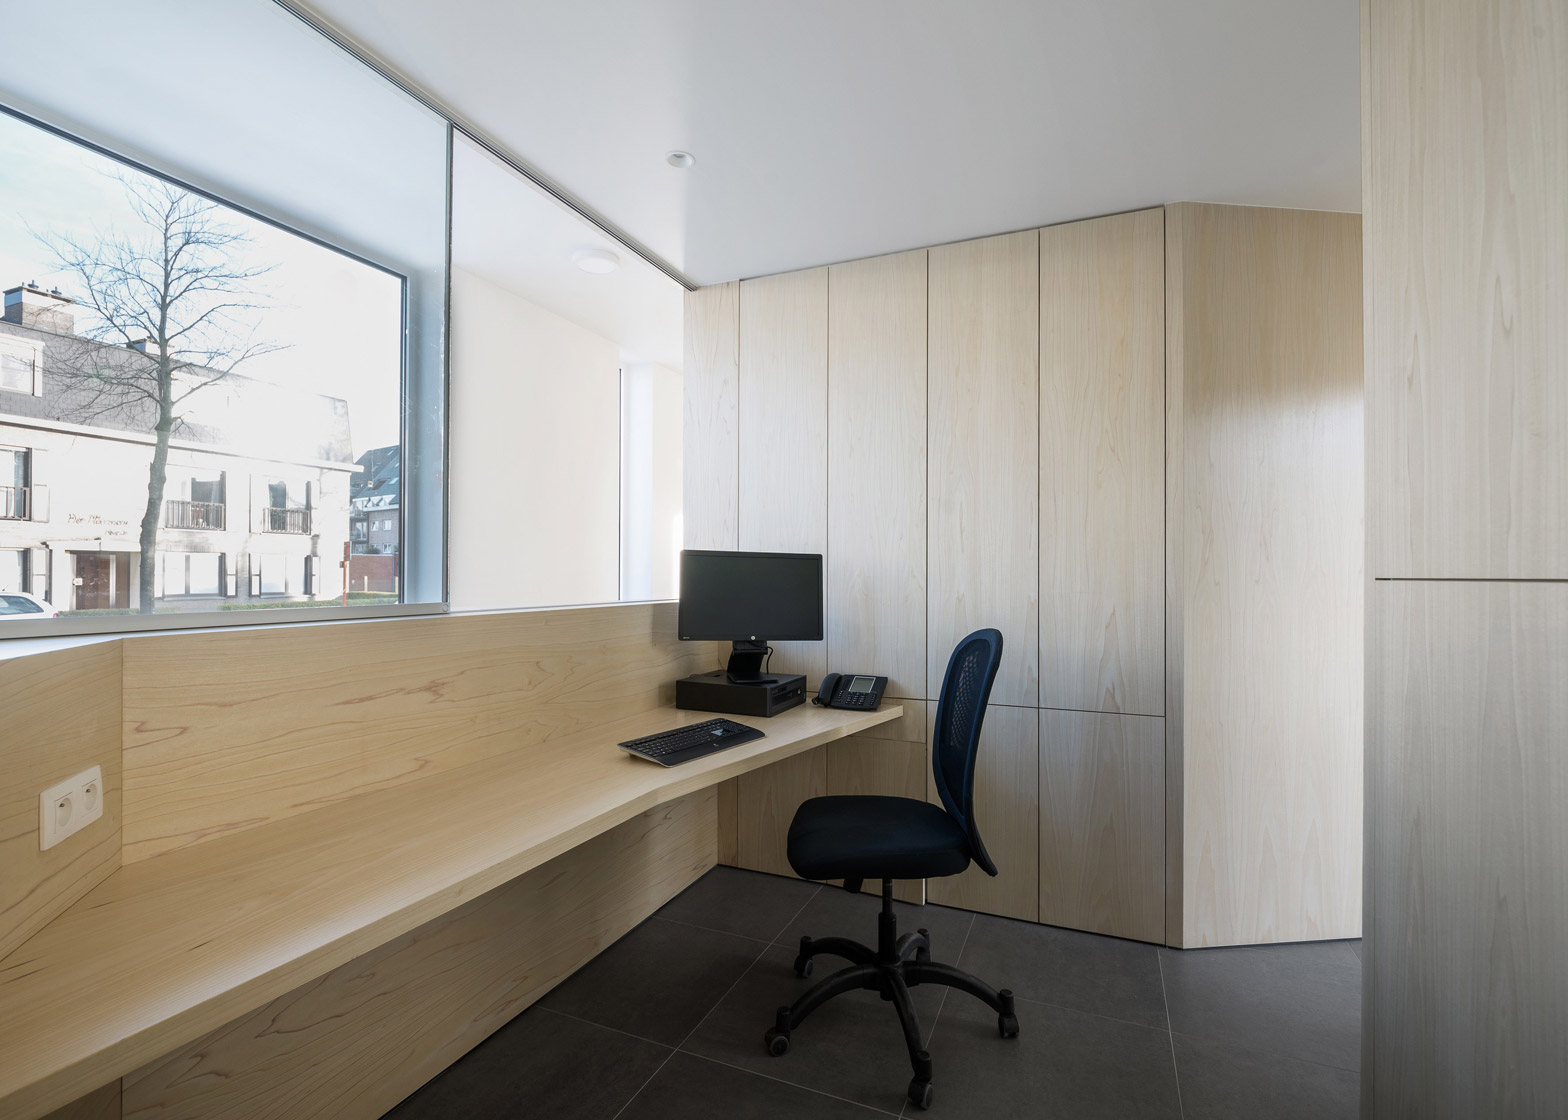 Joshua Florquin uses angular joinery to create bespoke furnishings for doctor's surgery in Maldegem, Belgium